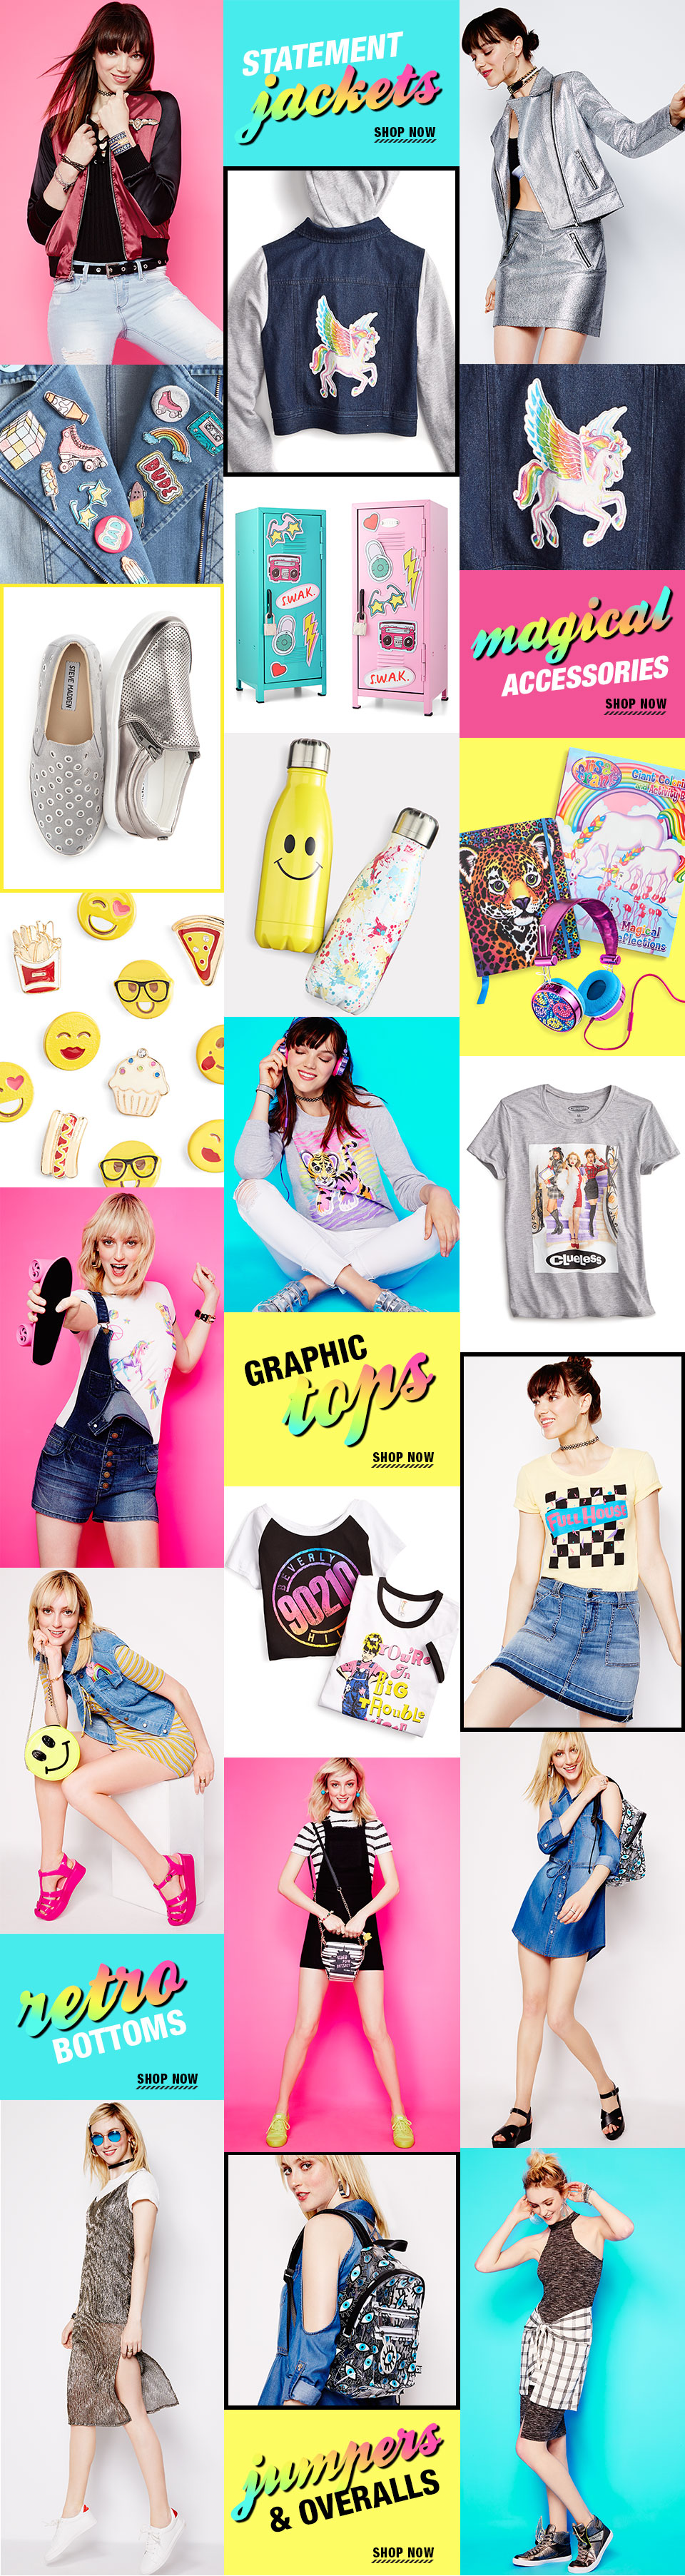 Statment jackets, magical accessories, graphic tops, retro bottoms, jumpers and overalls.